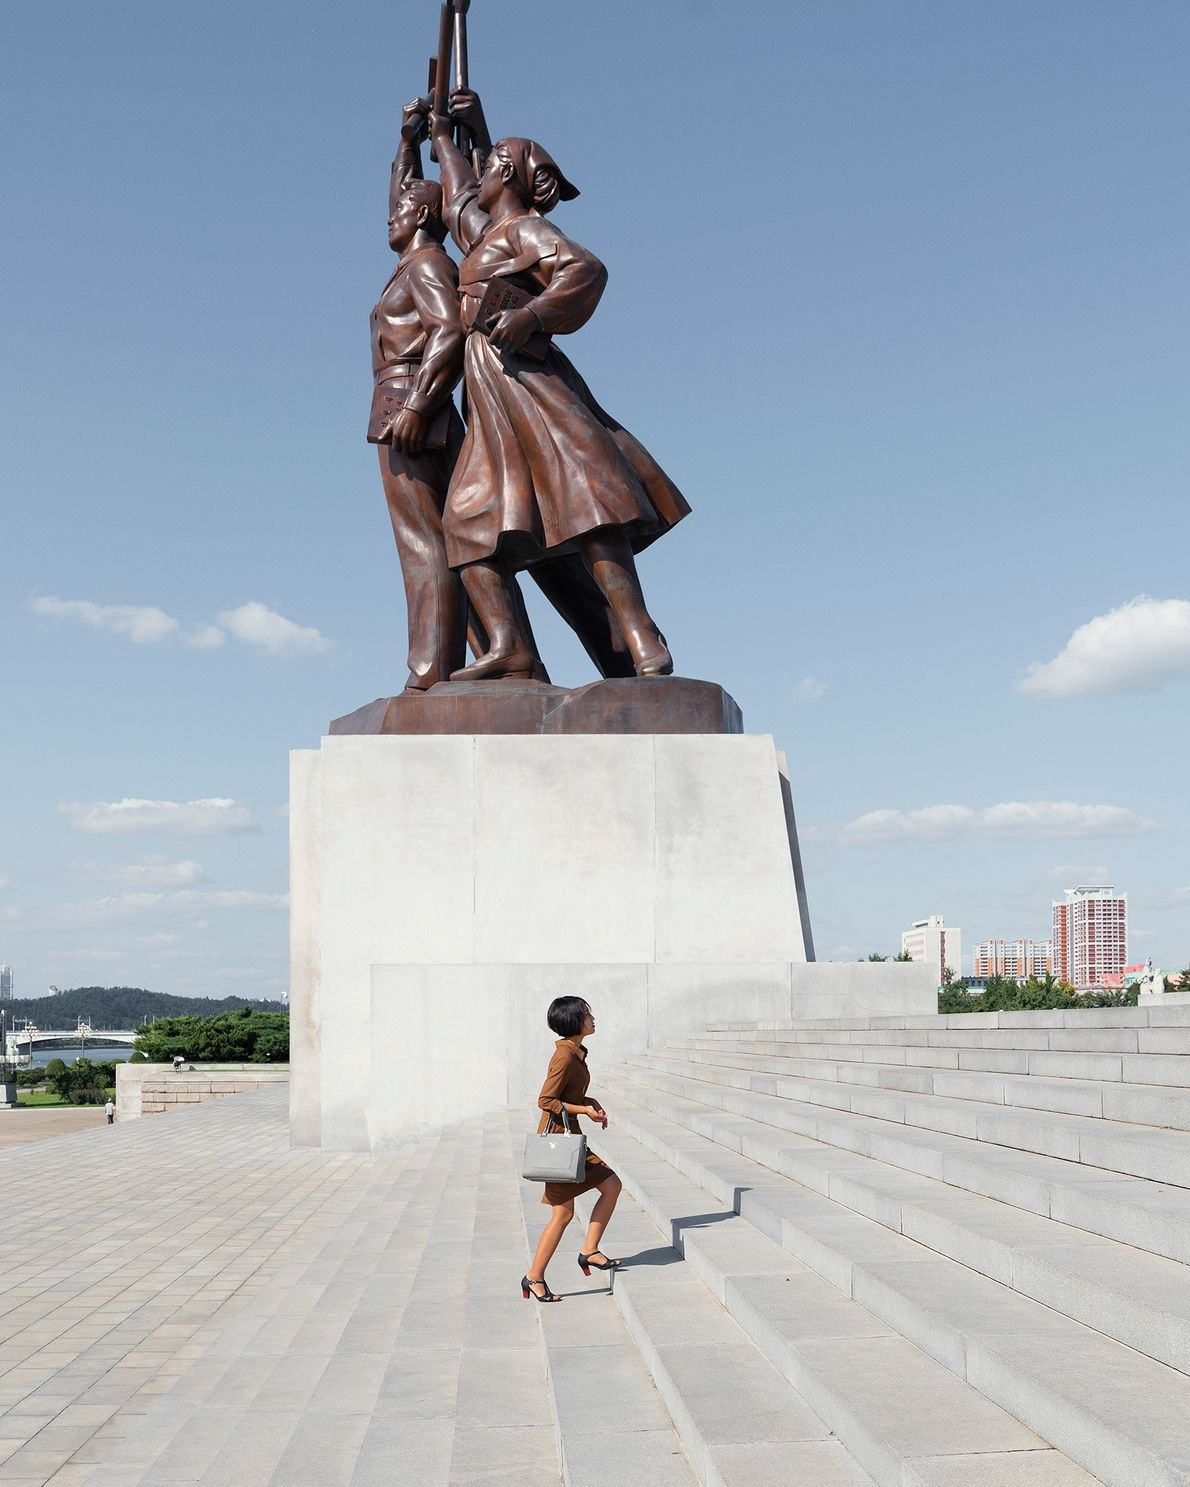 The Juche Tower is a monument in the North Korean capital.